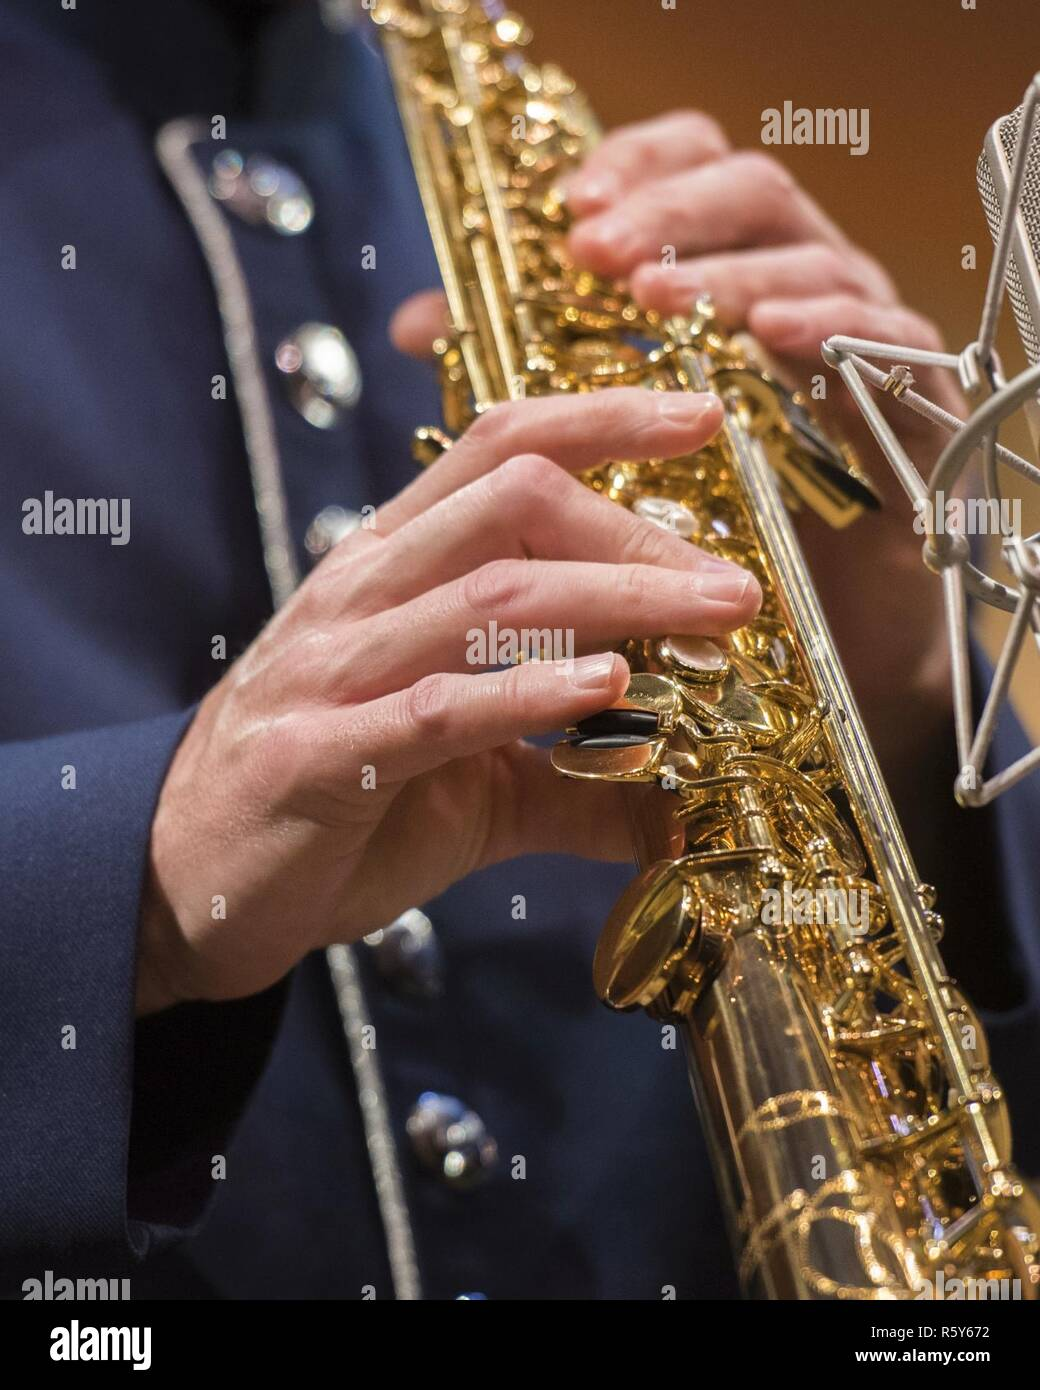 A U.S. Air Force Band member plays the soprano saxophone during a Jazz Heritage Series concert in Alexandria, Va., April 20, 2017. In 1990, the Air Force Band established the jazz heritage series, featuring the Airmen of Note in concert with well-known jazz icons. - Stock Image